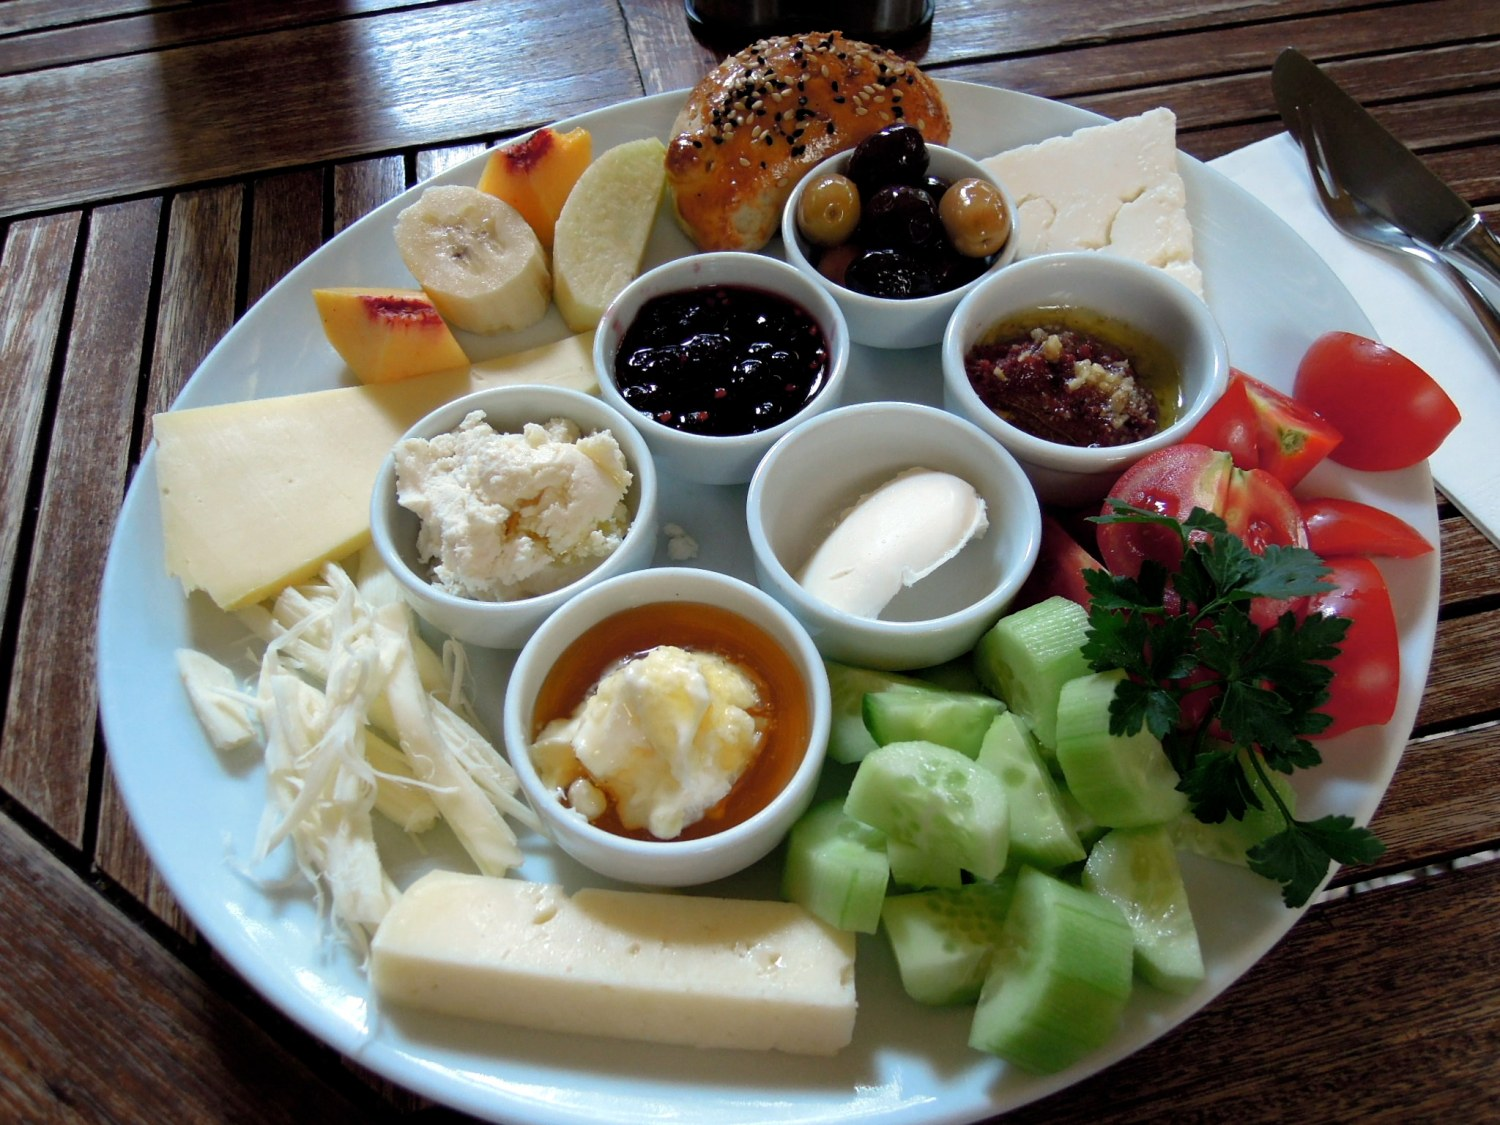 Turkish breakfast plate